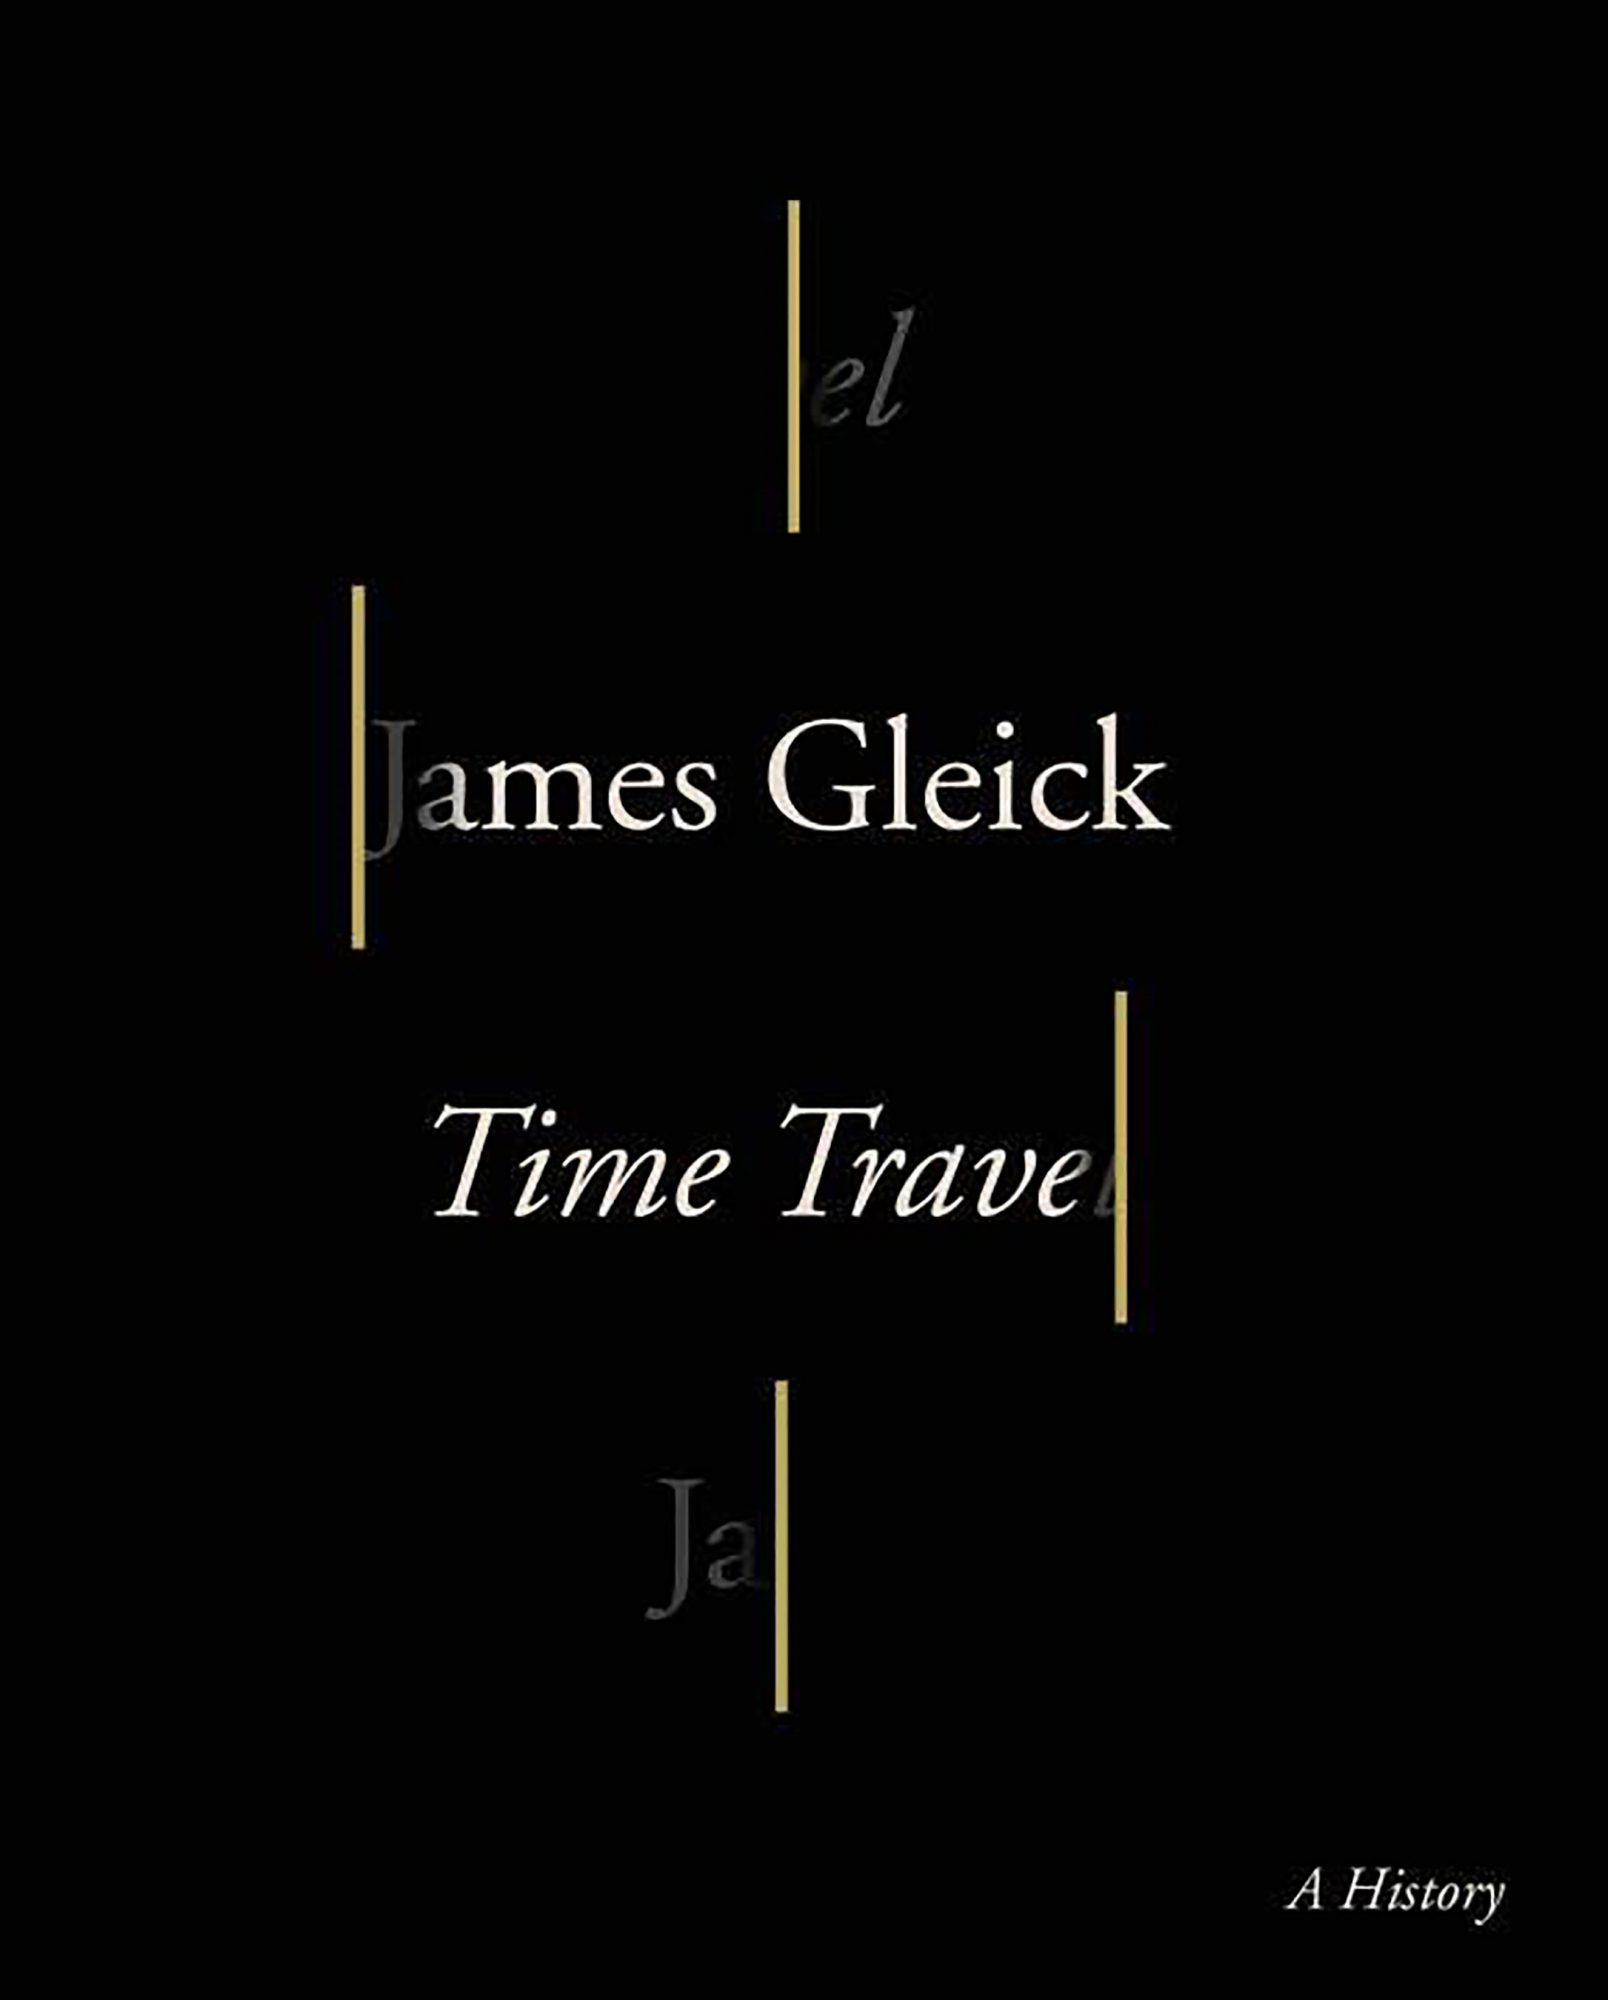 Time Travel by James Gleck CR: Knopf Doubleday Publishing Group